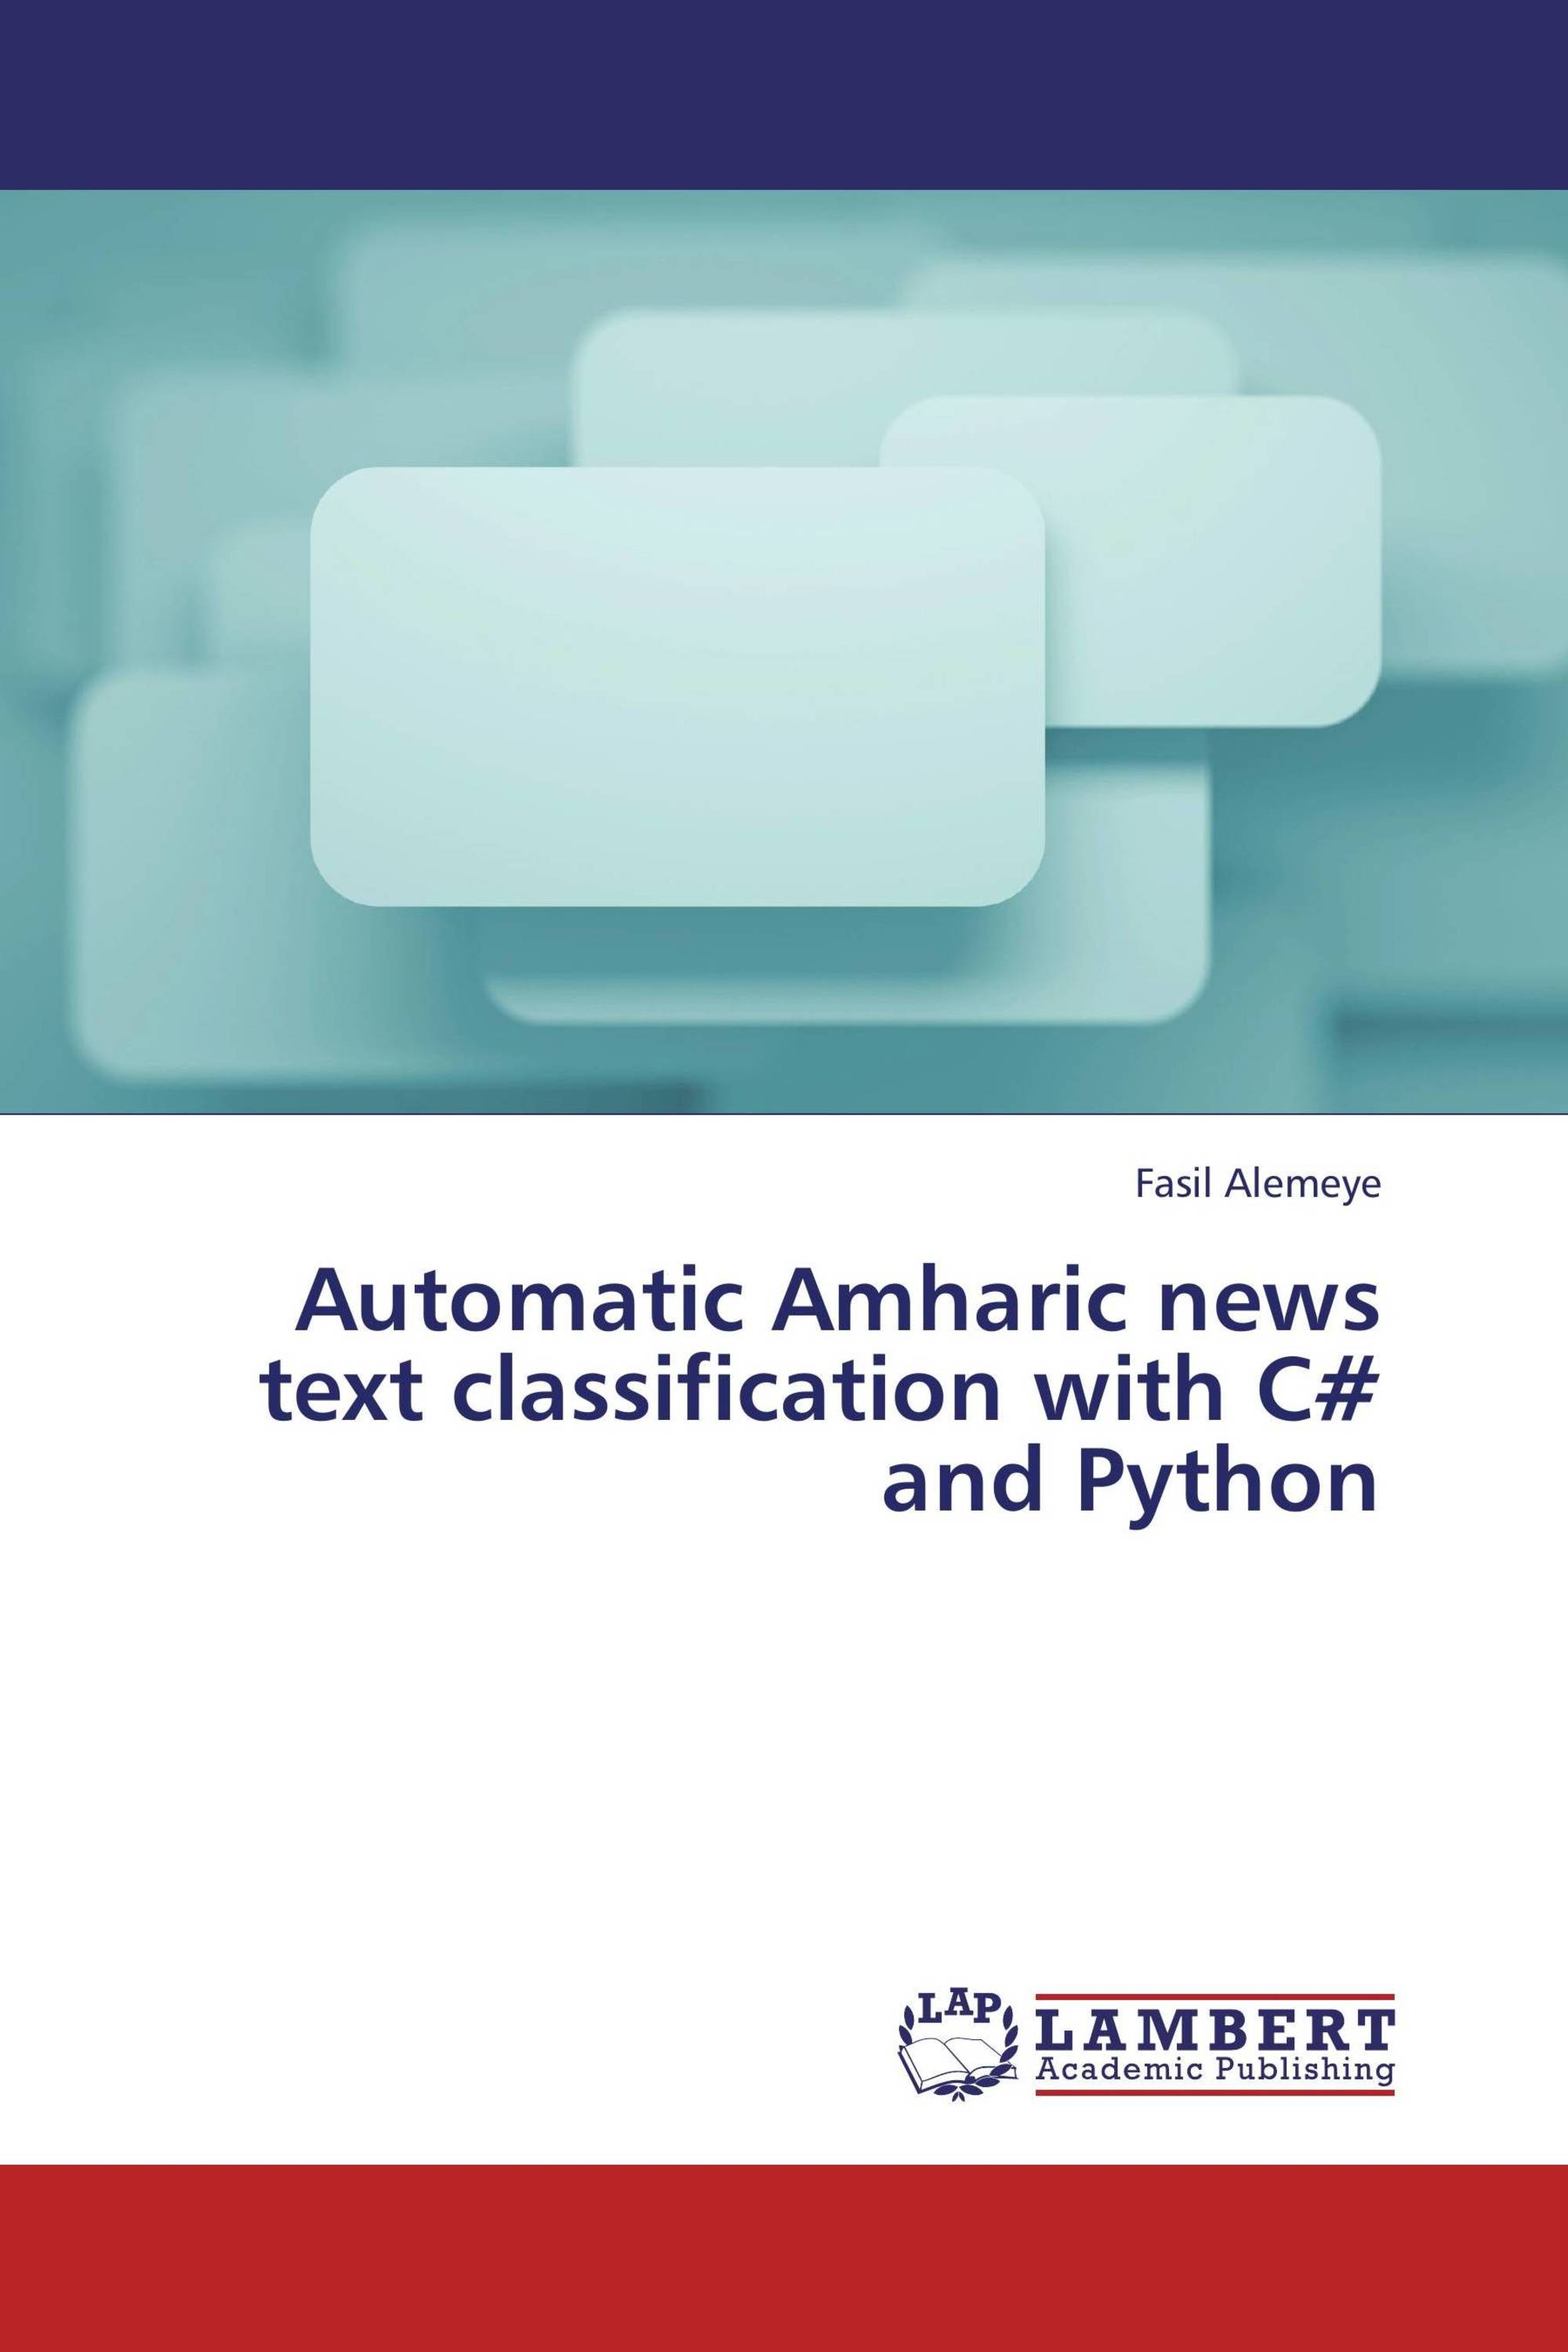 thesis on text classification This research presents and compares the impact of text preprocessing, which has not been addressed before, on arabic text classification using popular text classification algorithms decision tree, k nearest neighbors, support vector machines, naïve bayes and its variations.